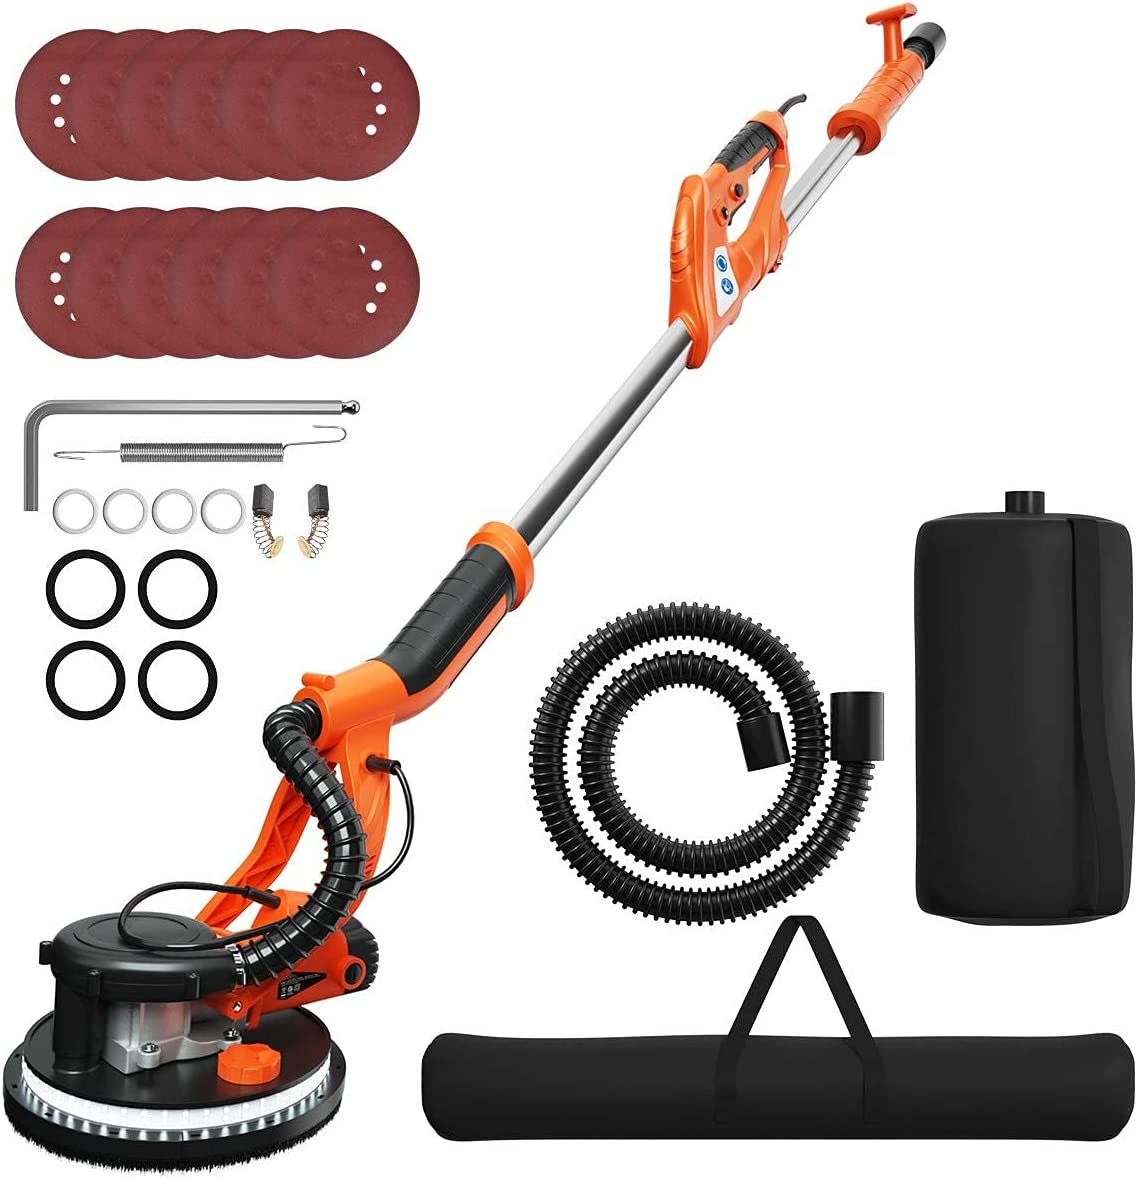 ERGOMASTER 750W Drywall Free shipping New Sander Variable Wall Electric Manufacturer regenerated product Speed San